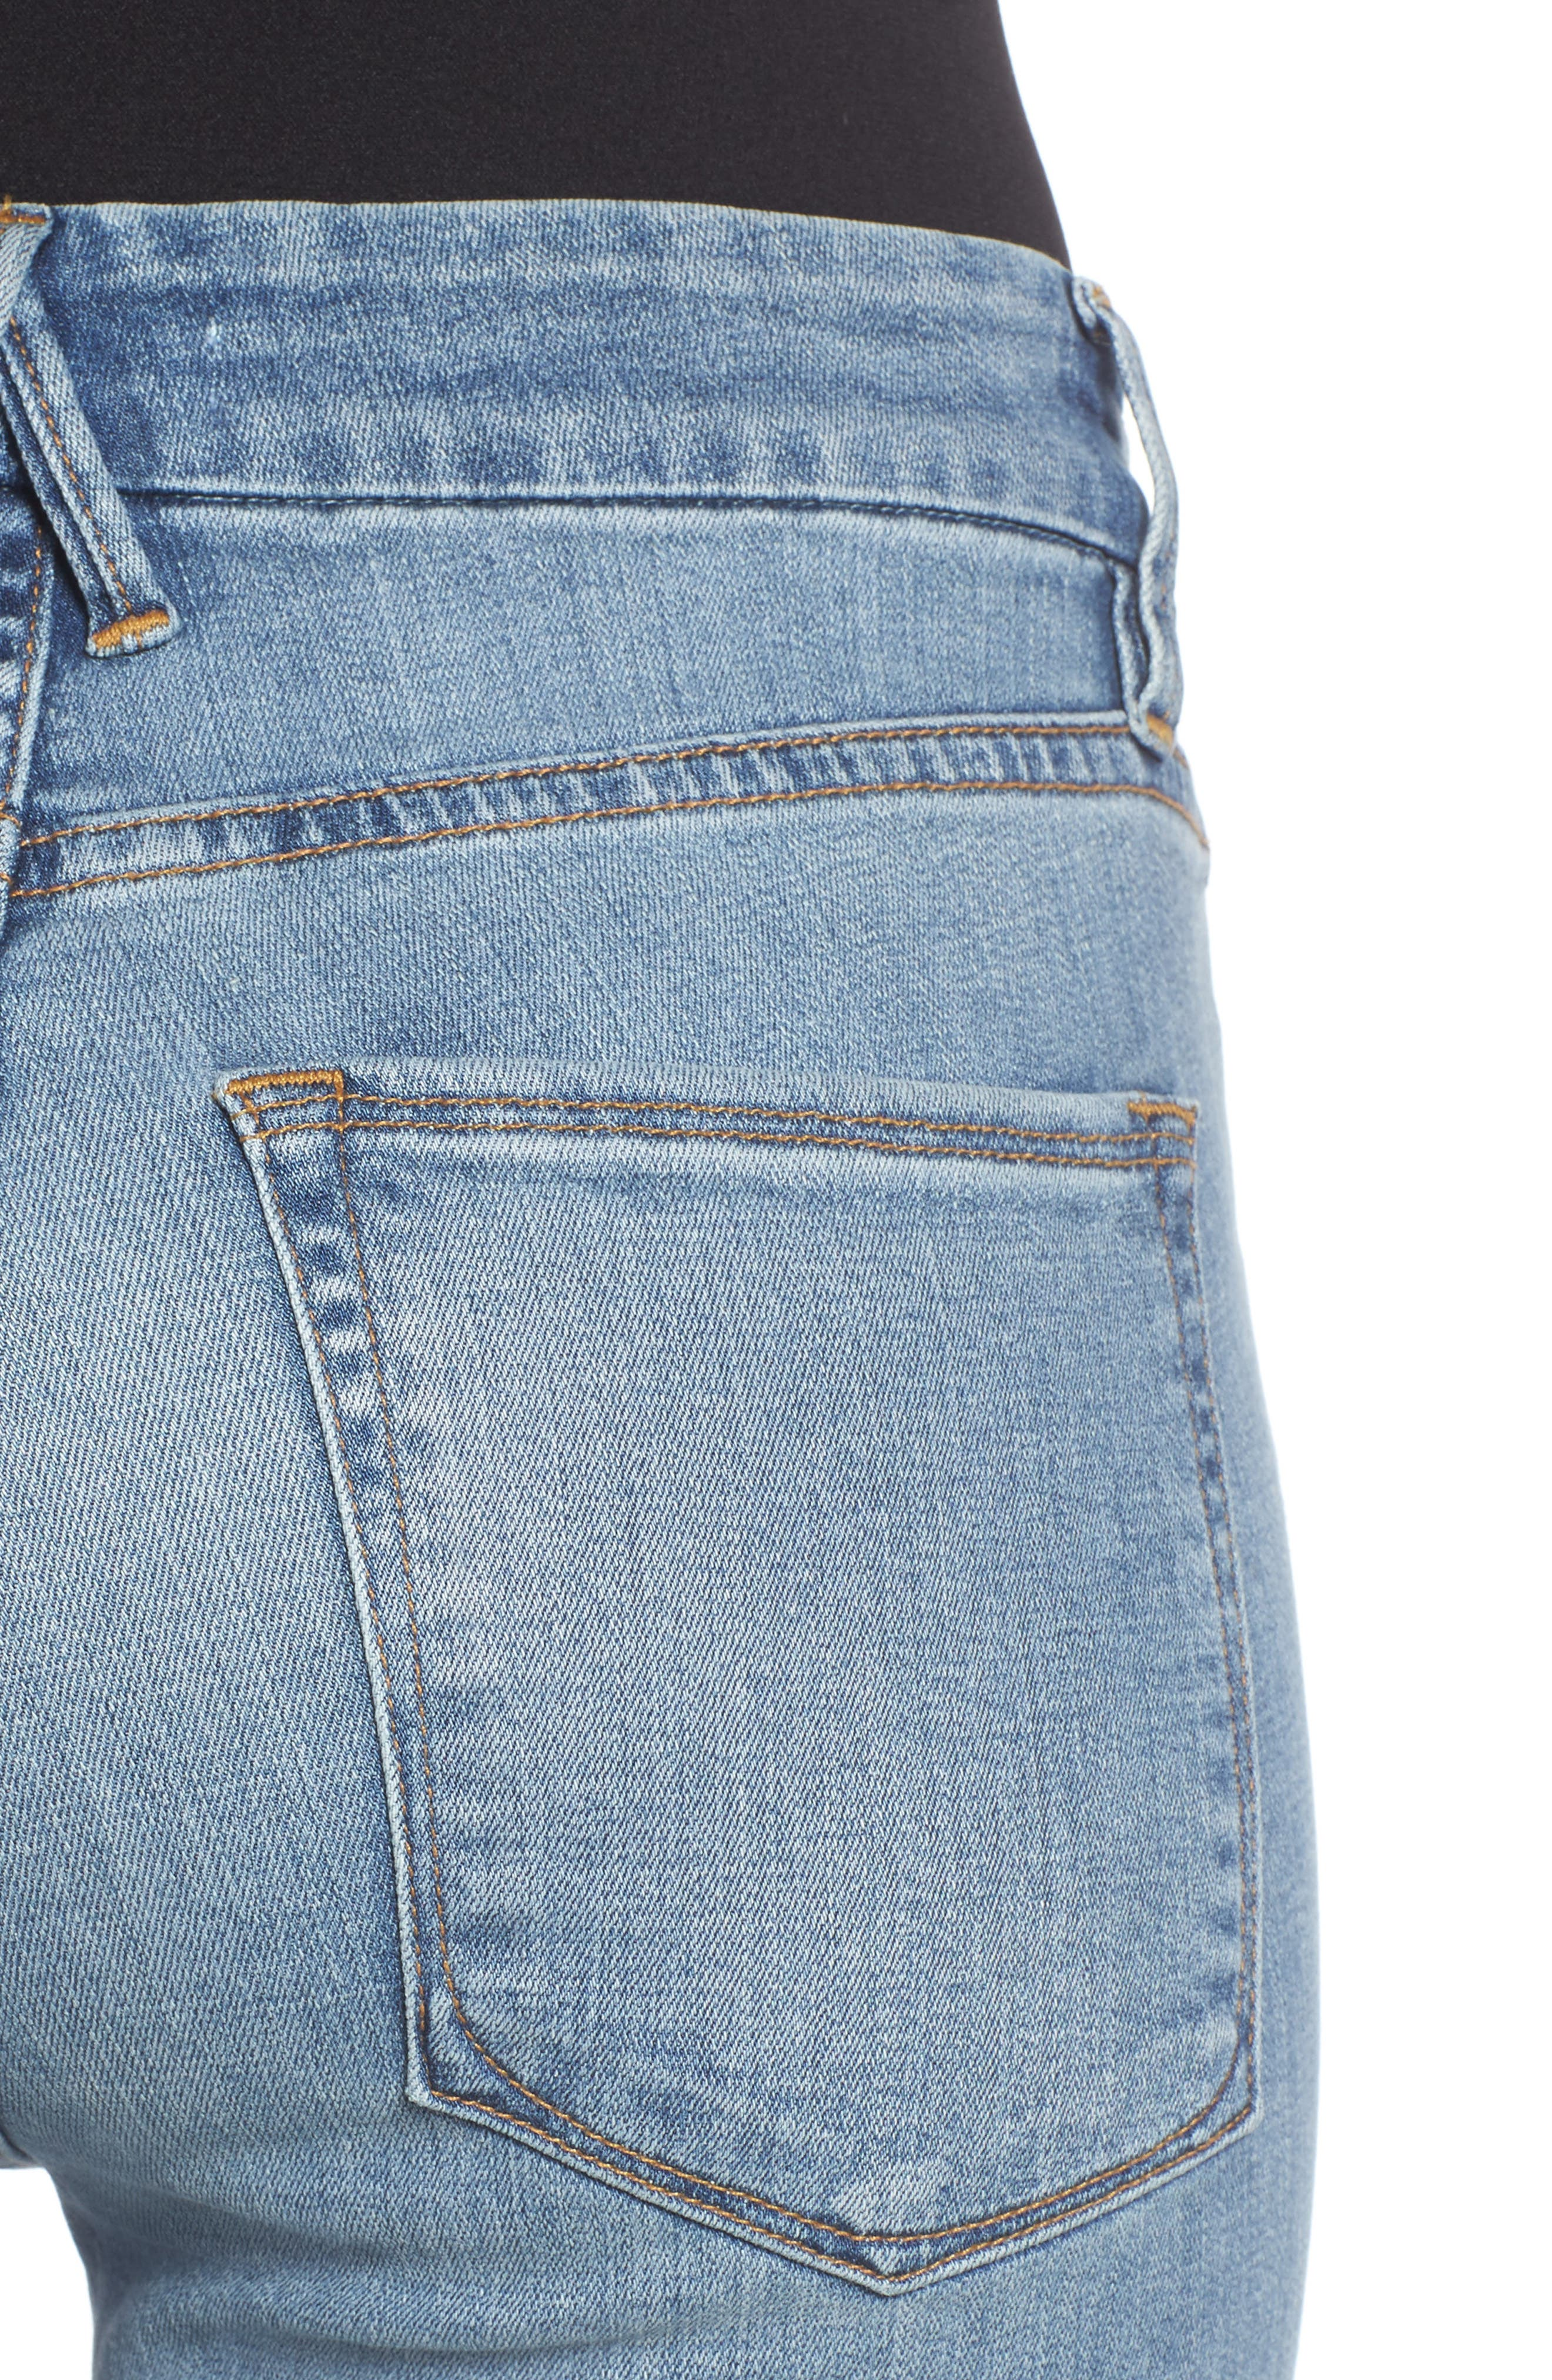 Alternate Image 6  - Good American Good Straight High Rise Jeans (Blue 087) (Extended Sizes)